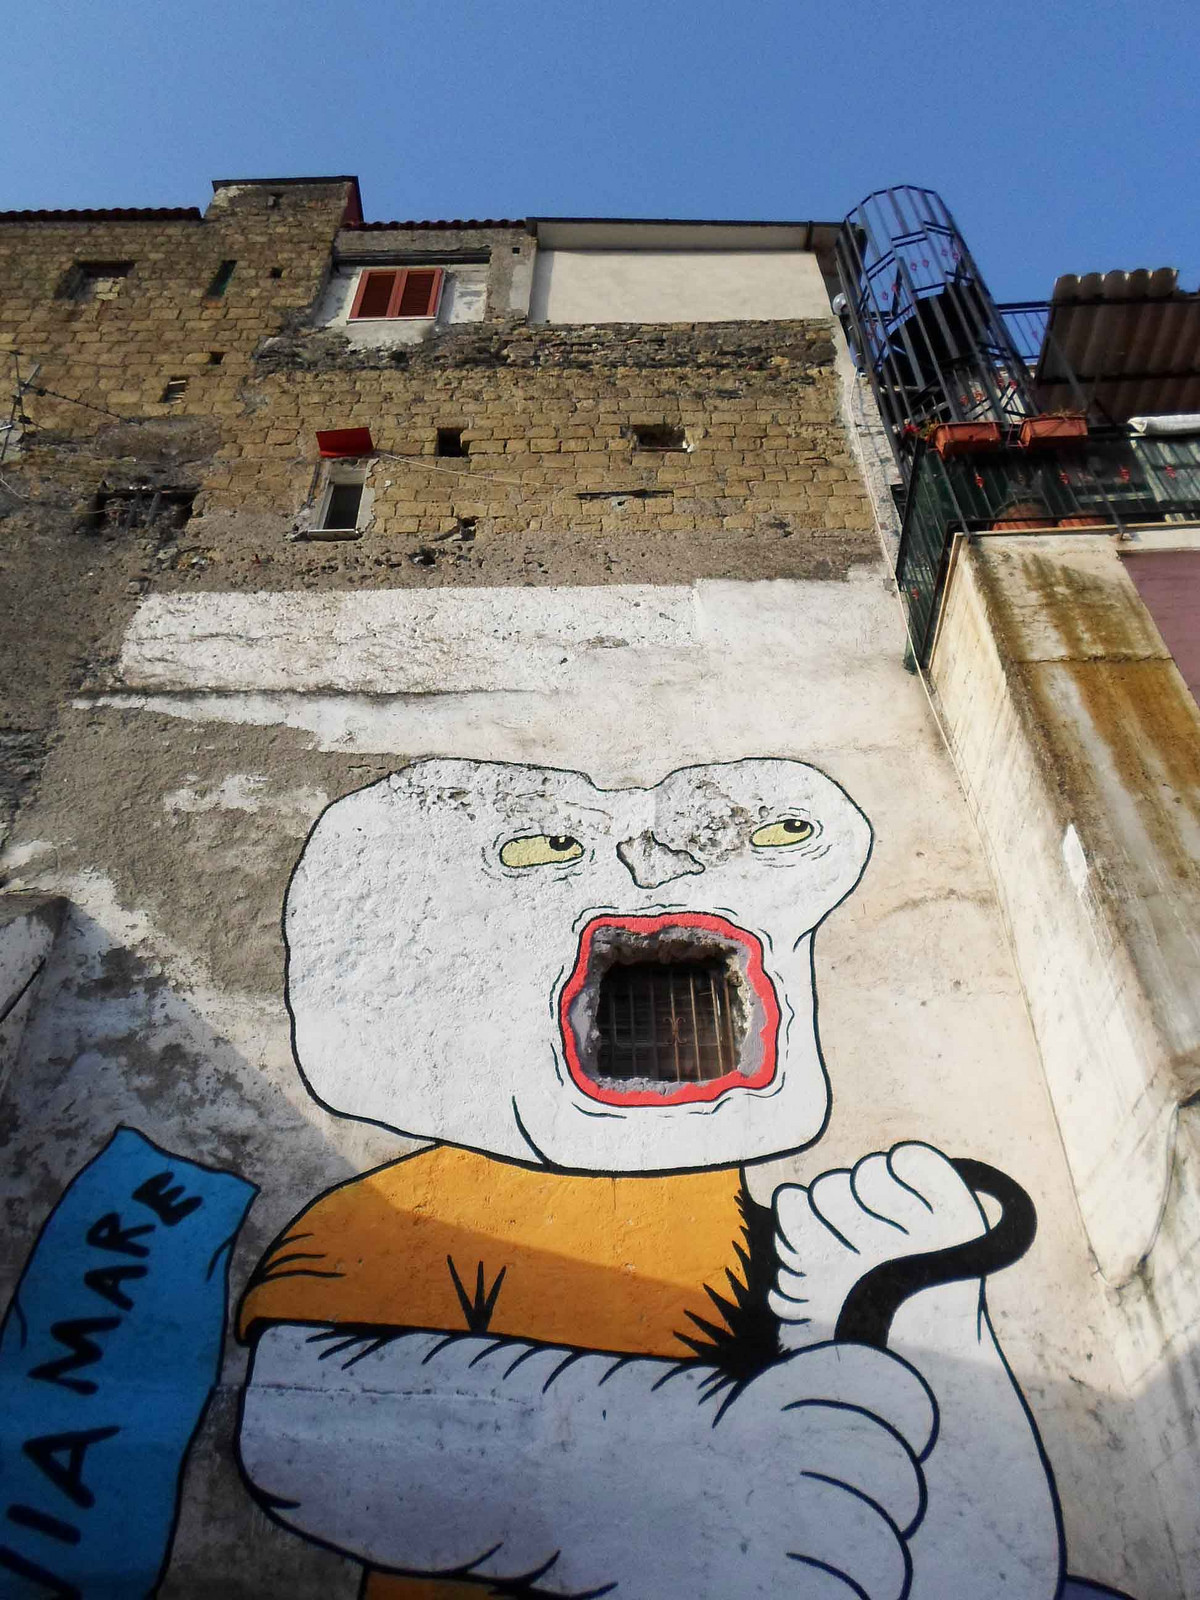 diego-miedo-new-murals-in-napoli-and-ercolano-07